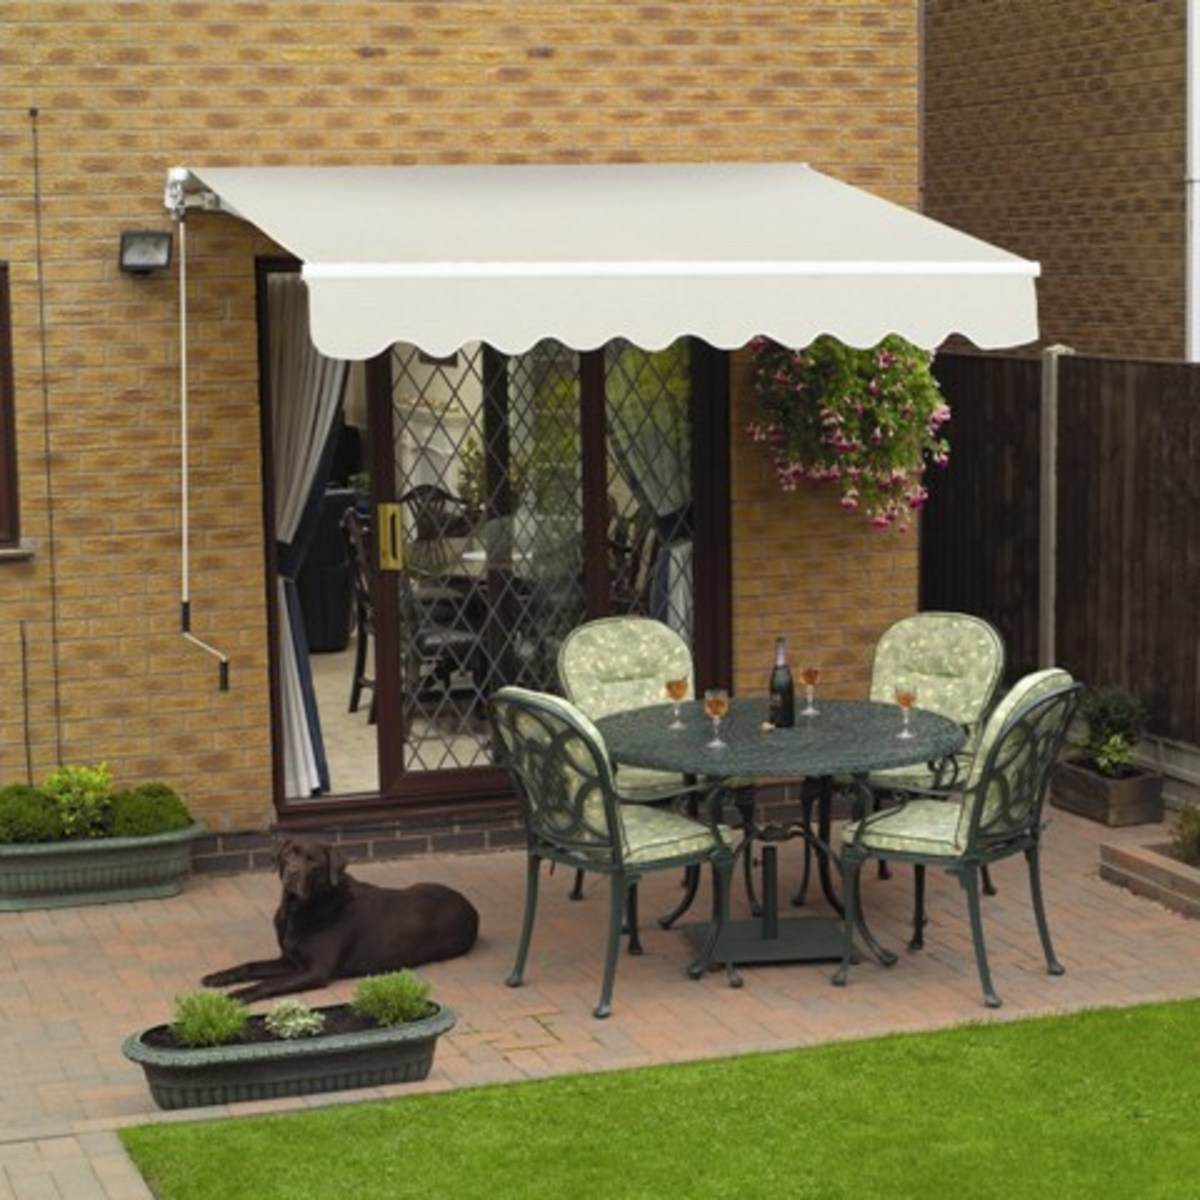 Patio Shades - Roofs and Canopies